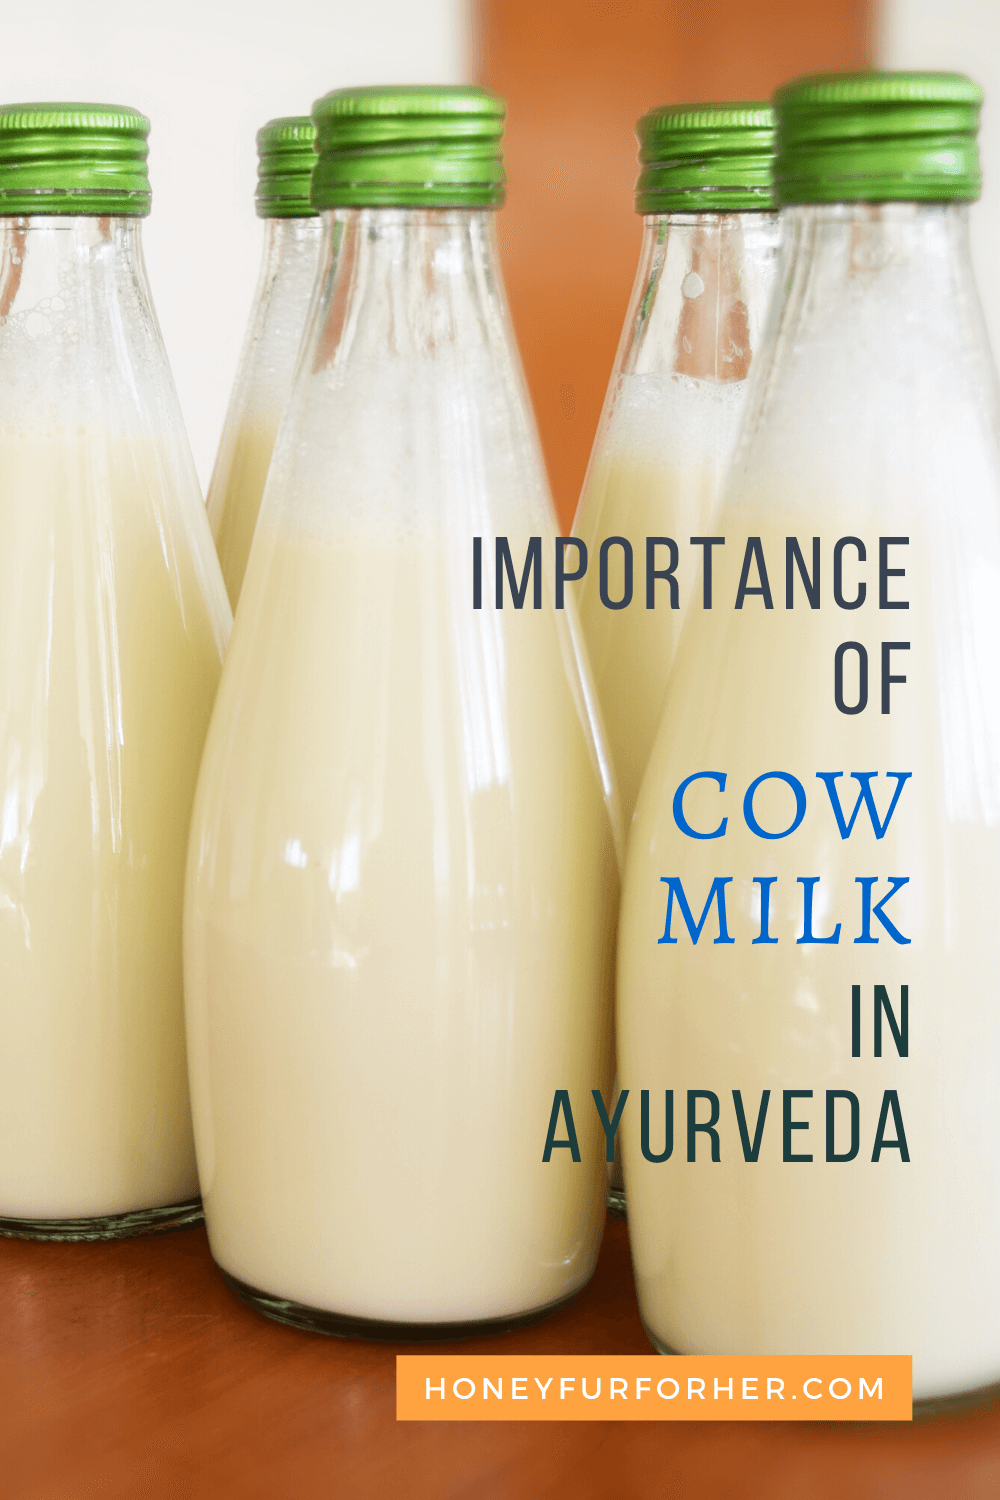 Importance Of Cow milk in Ayurveda Pinterest Pin Image